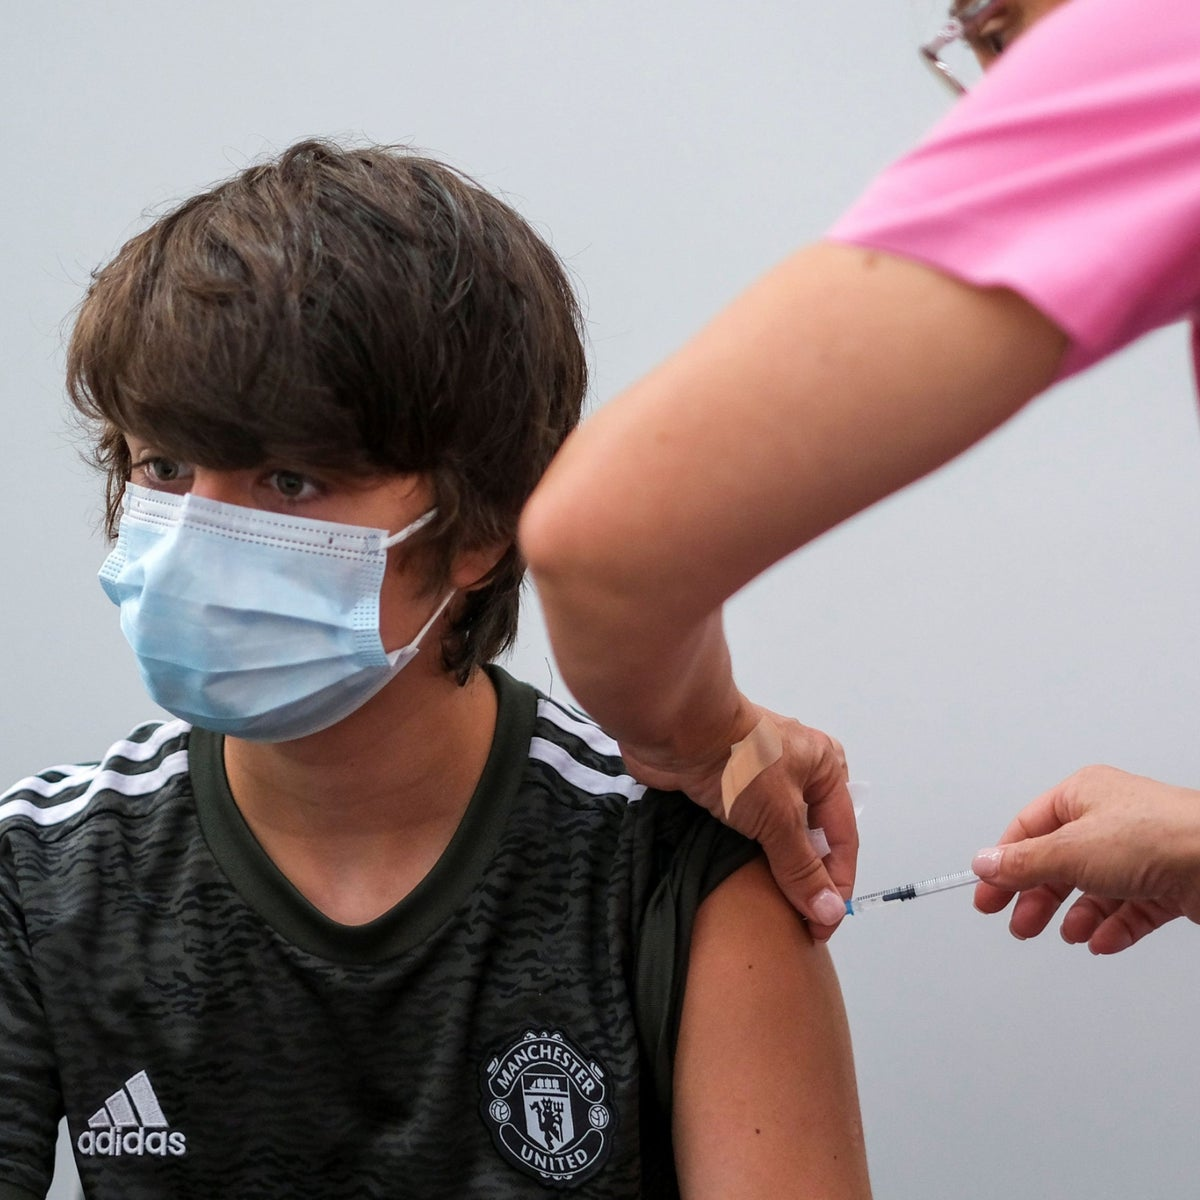 A boy in Portugal receiving his second dose of the Pfizer vaccine, last month.